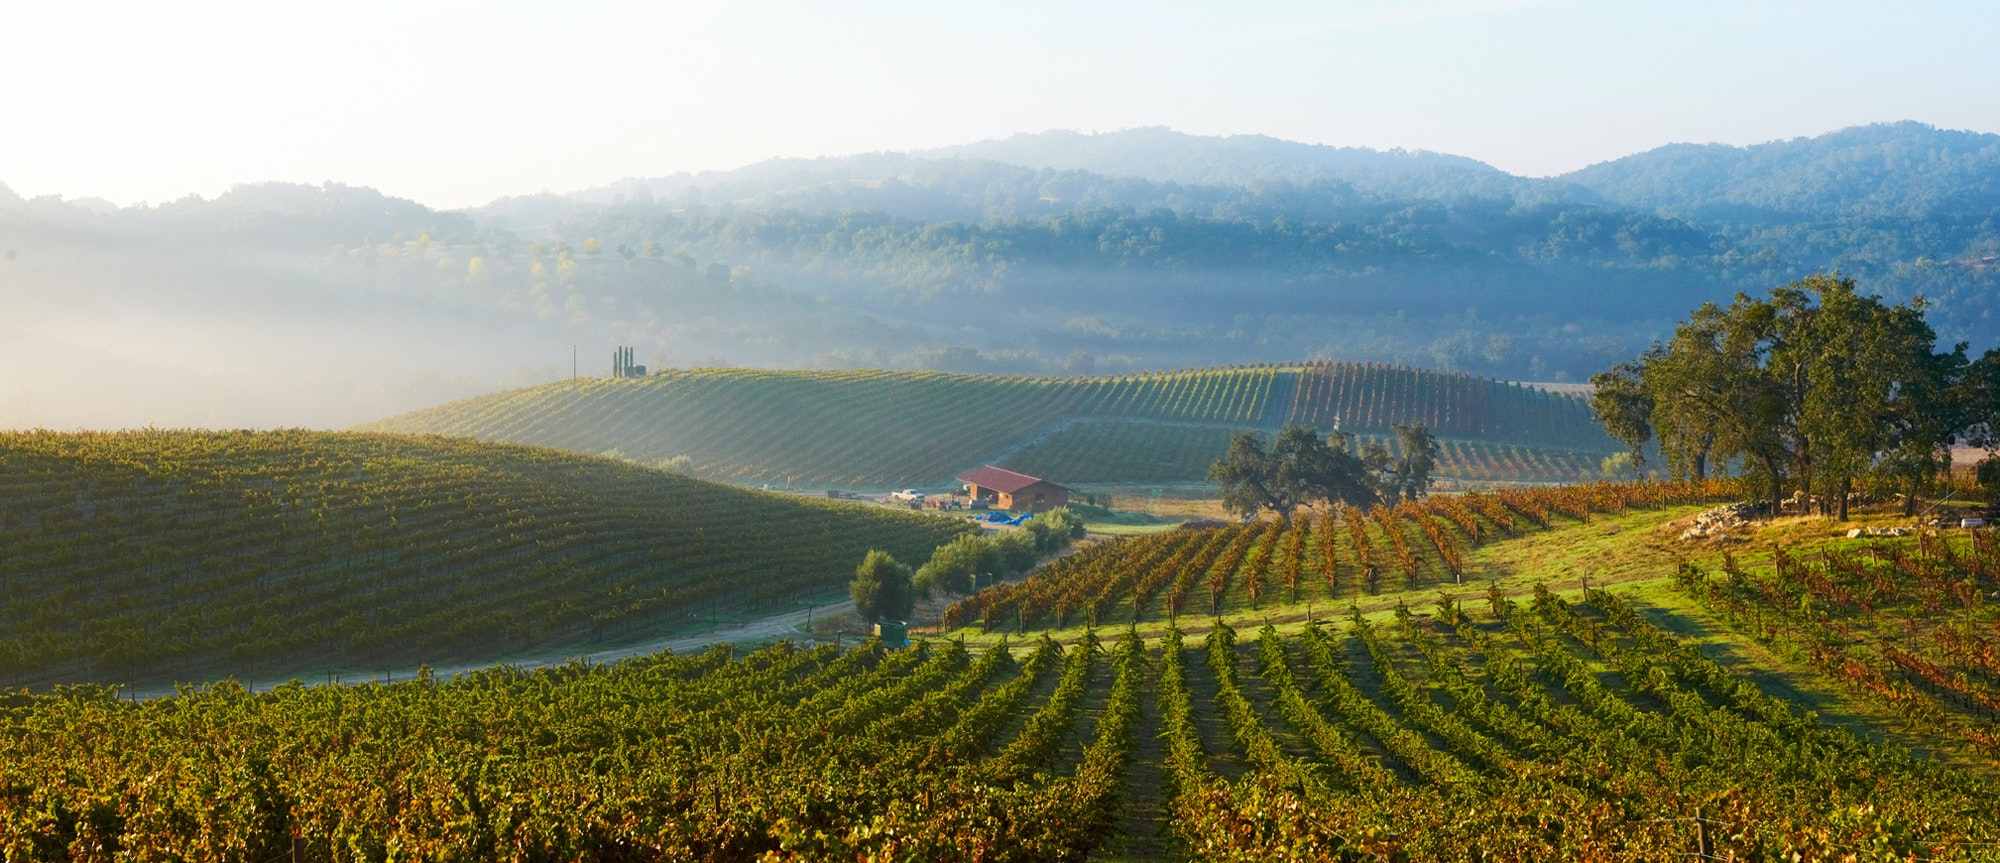 6 Best Wineries in Paso Robles, California